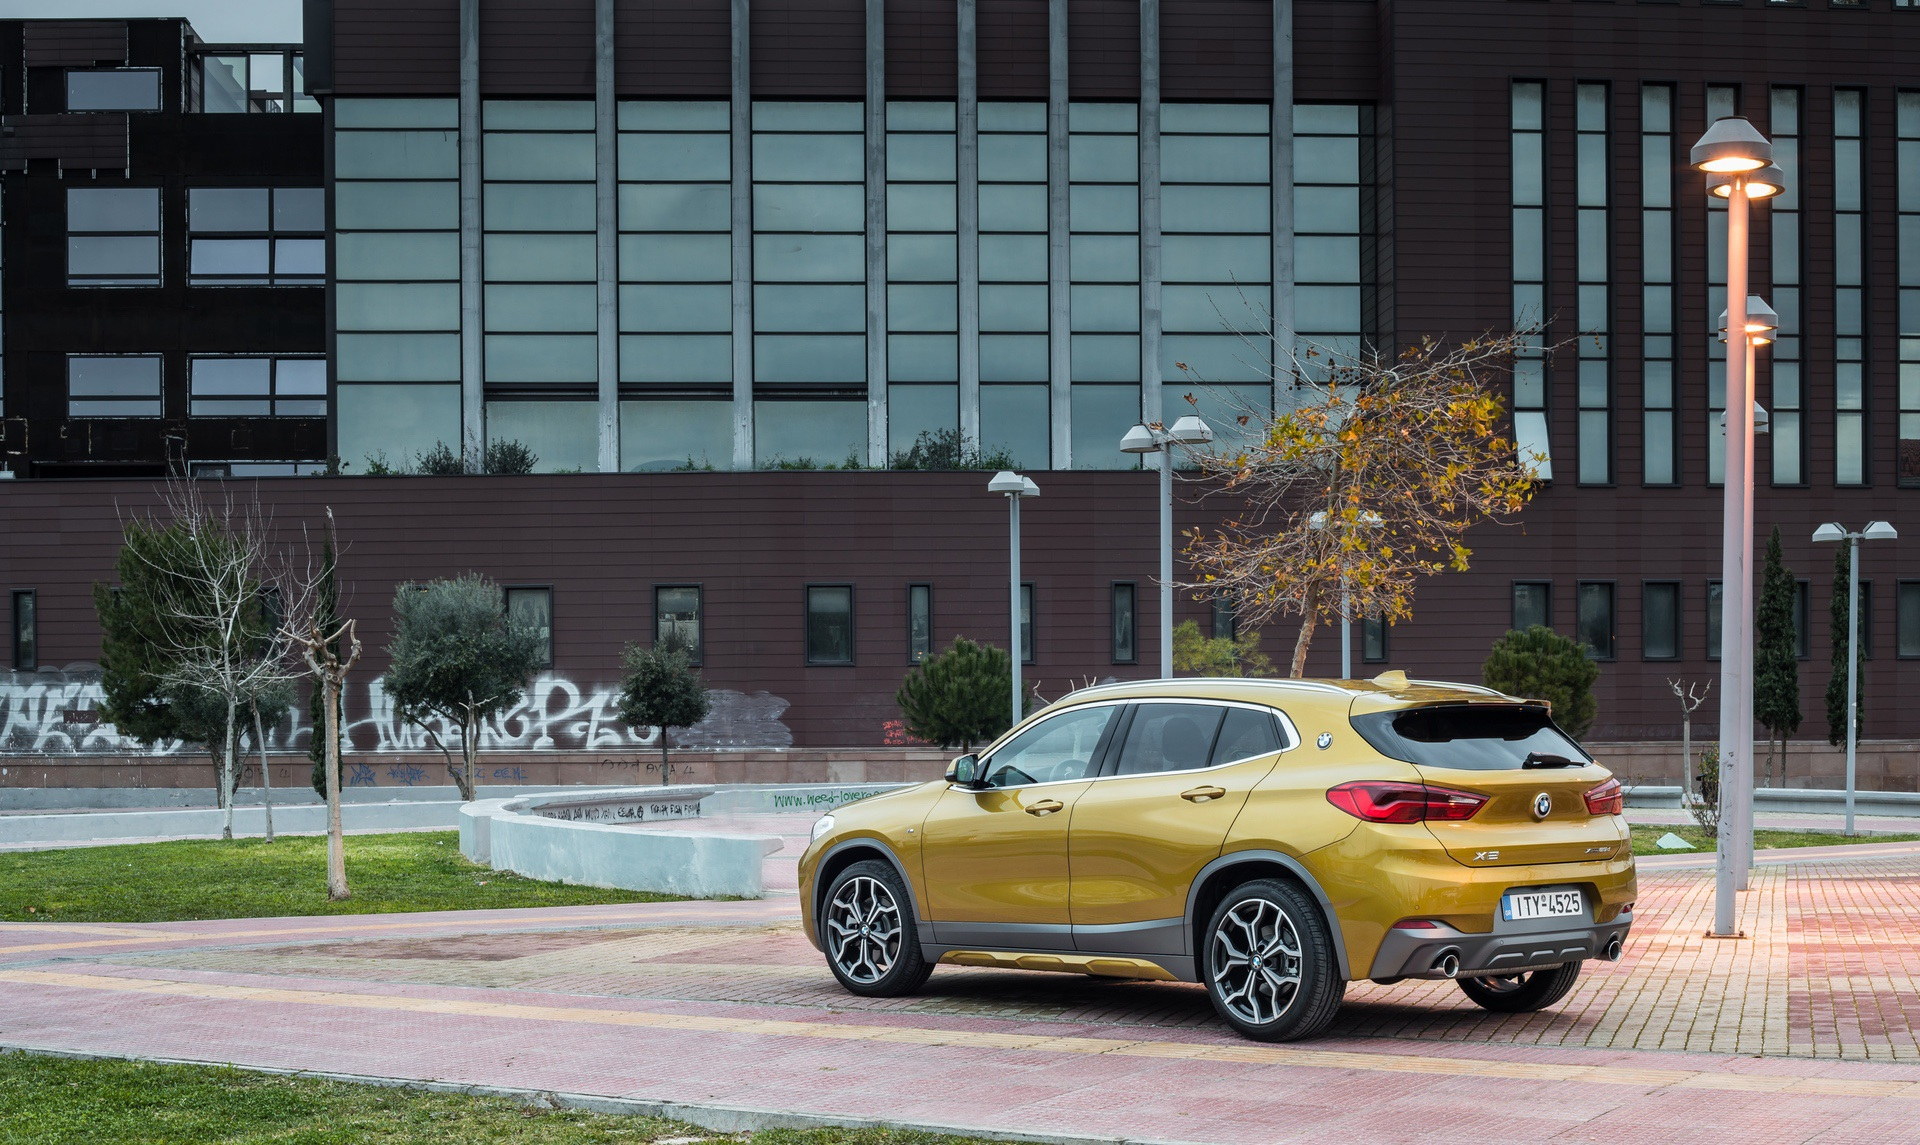 BMW_X2_Greek_presskit_0081